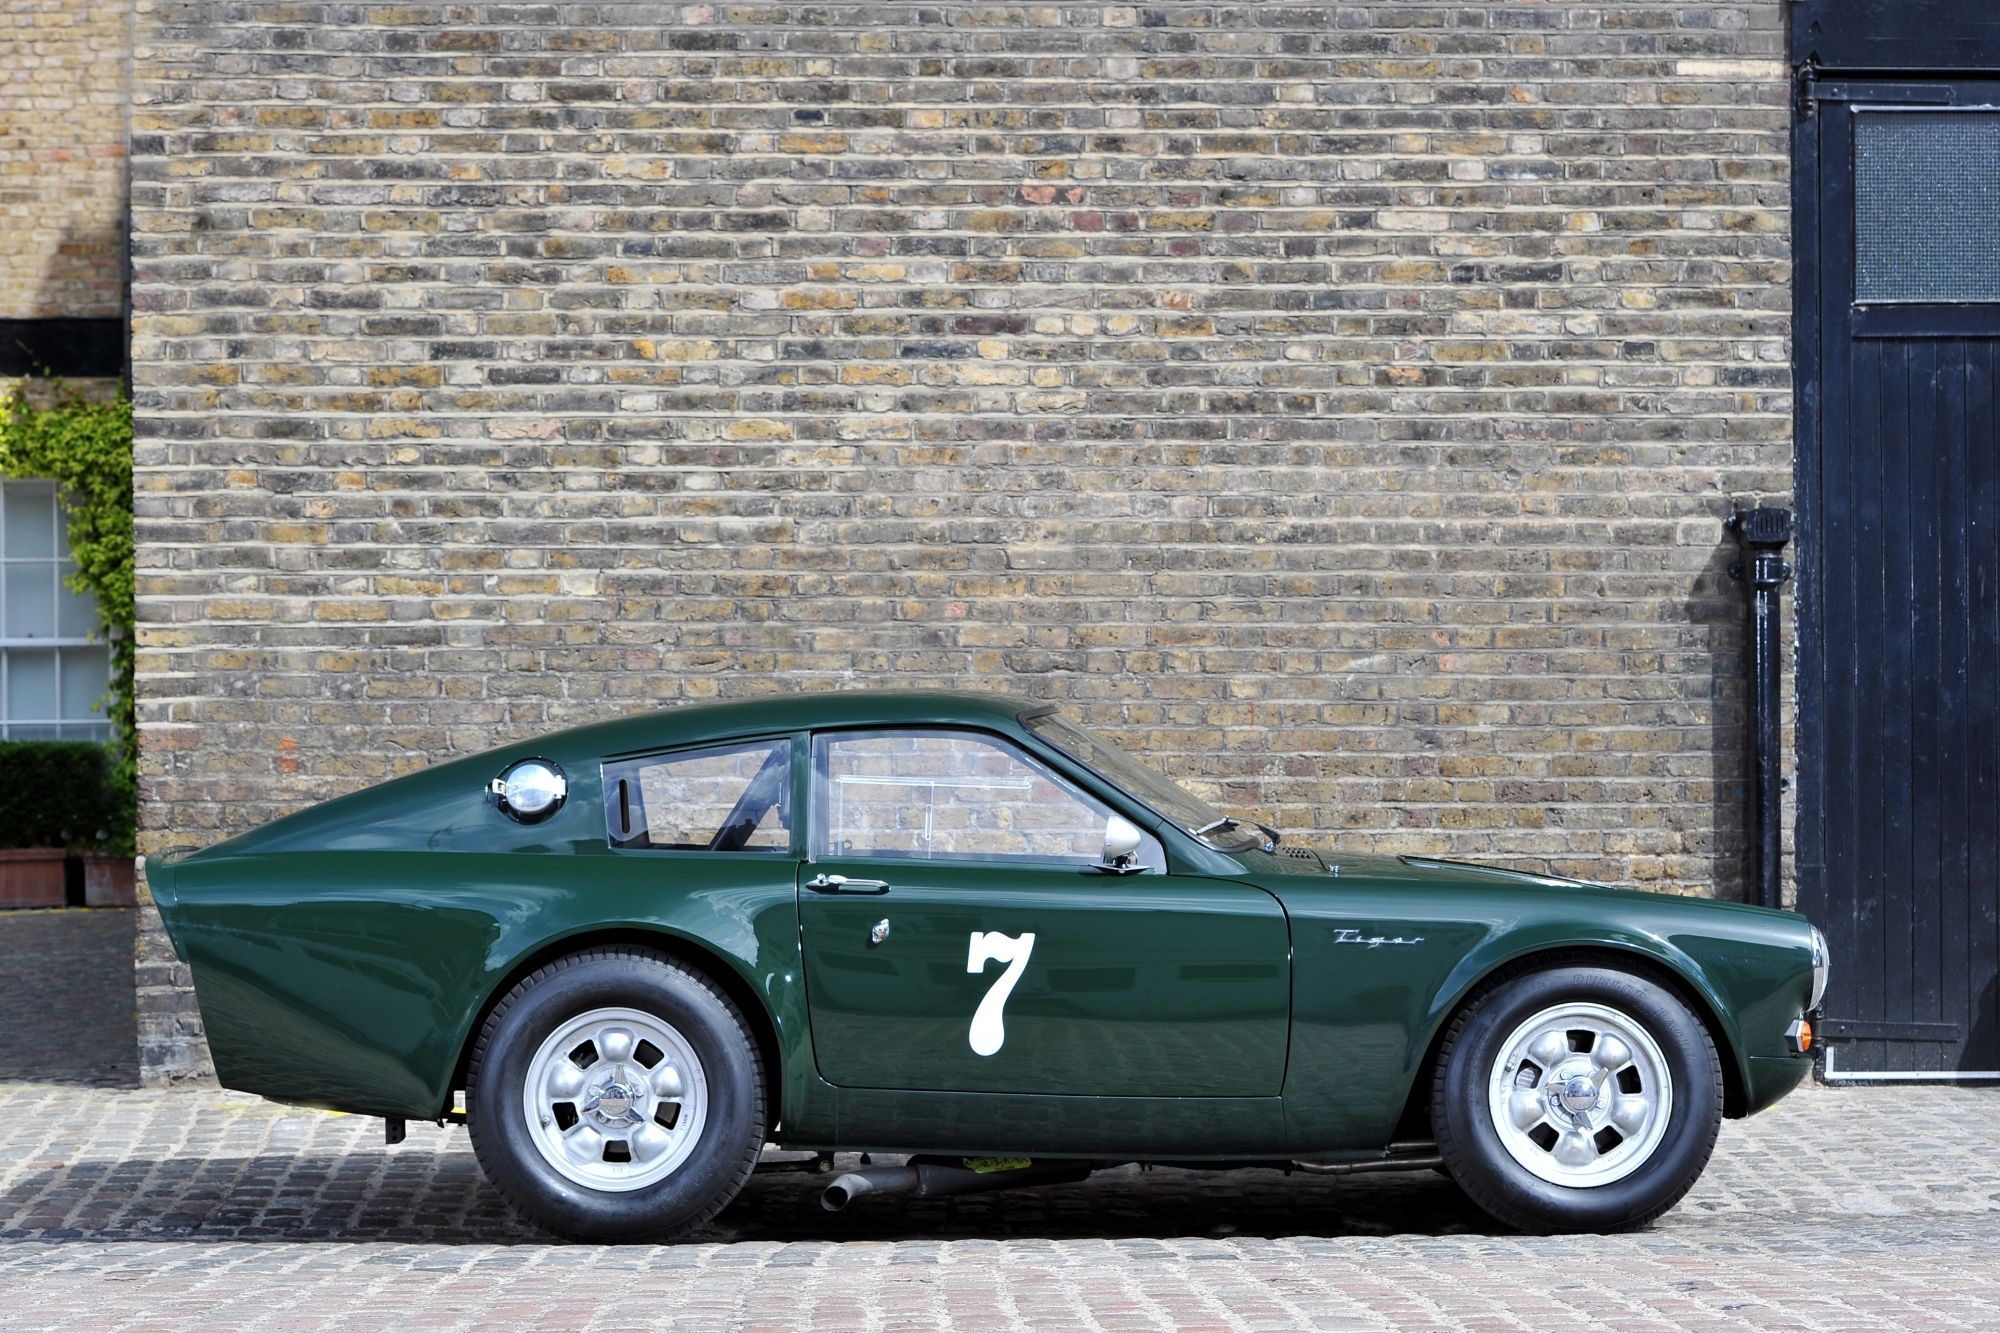 1964 Sunbeam Tiger Le Mans Coupe   Cars for sale   FISKENS   Hot ...